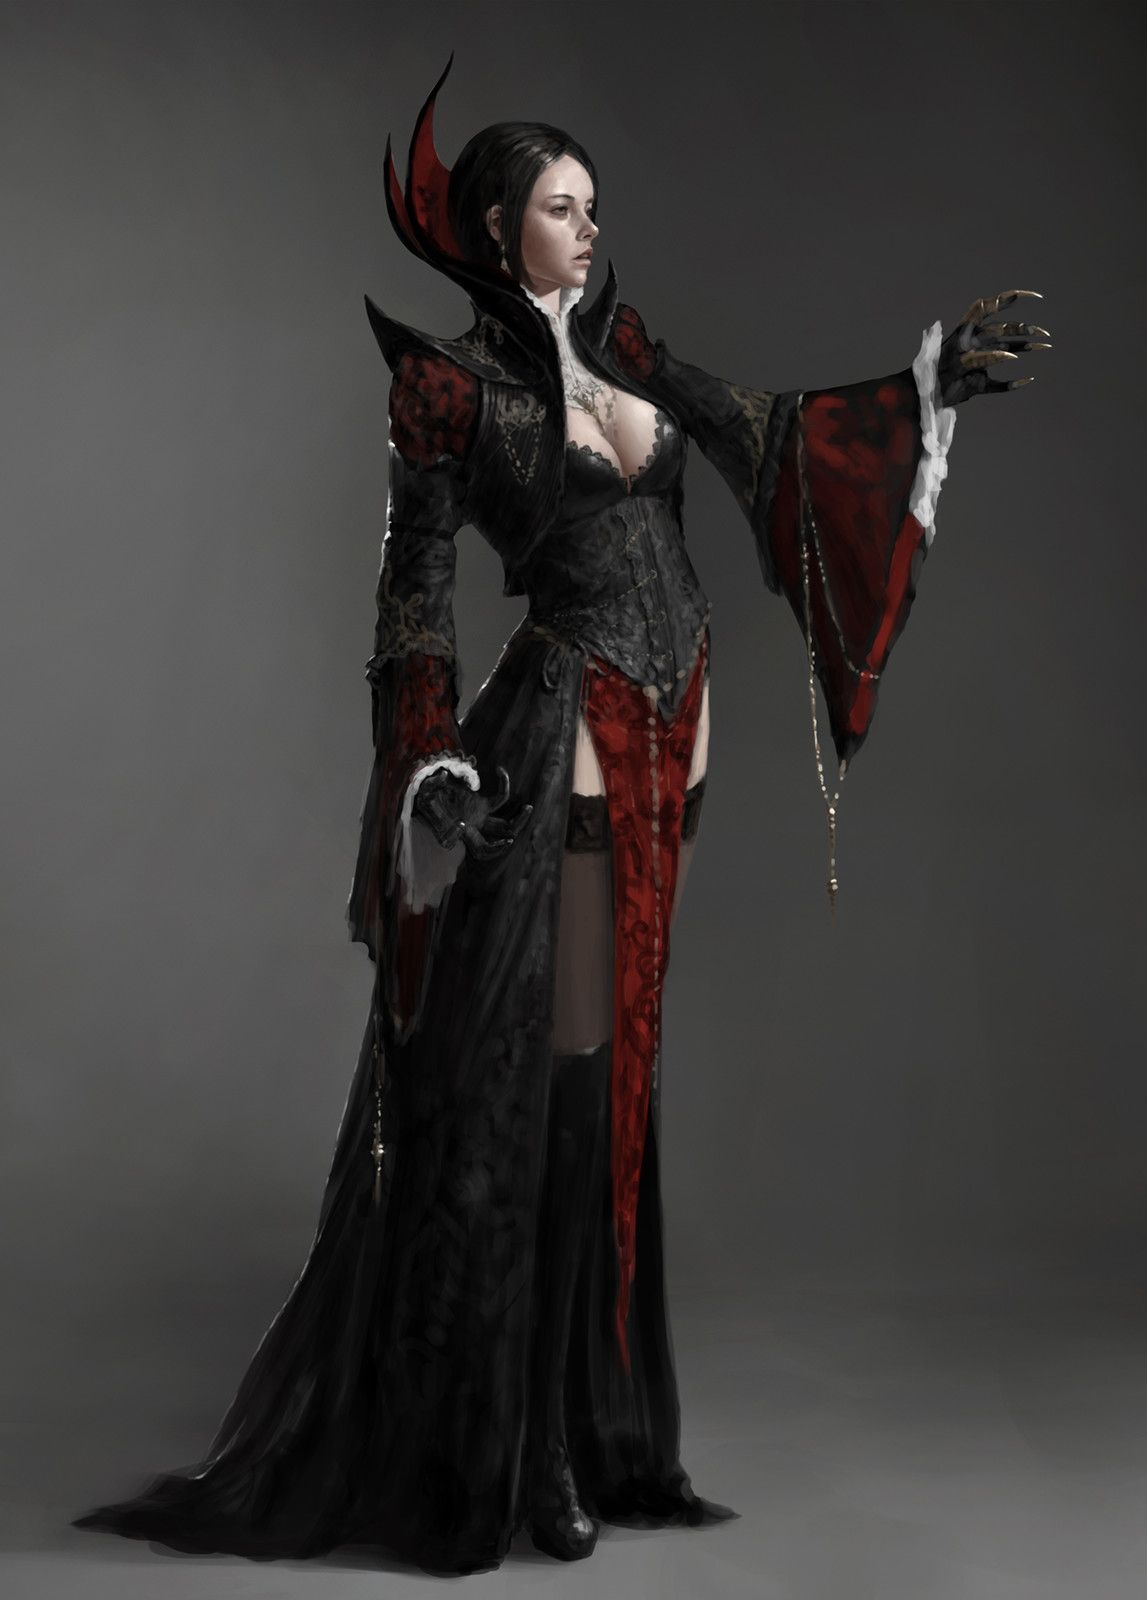 Old work Vampire countess, Jonghwan Lee on ArtStation at ...